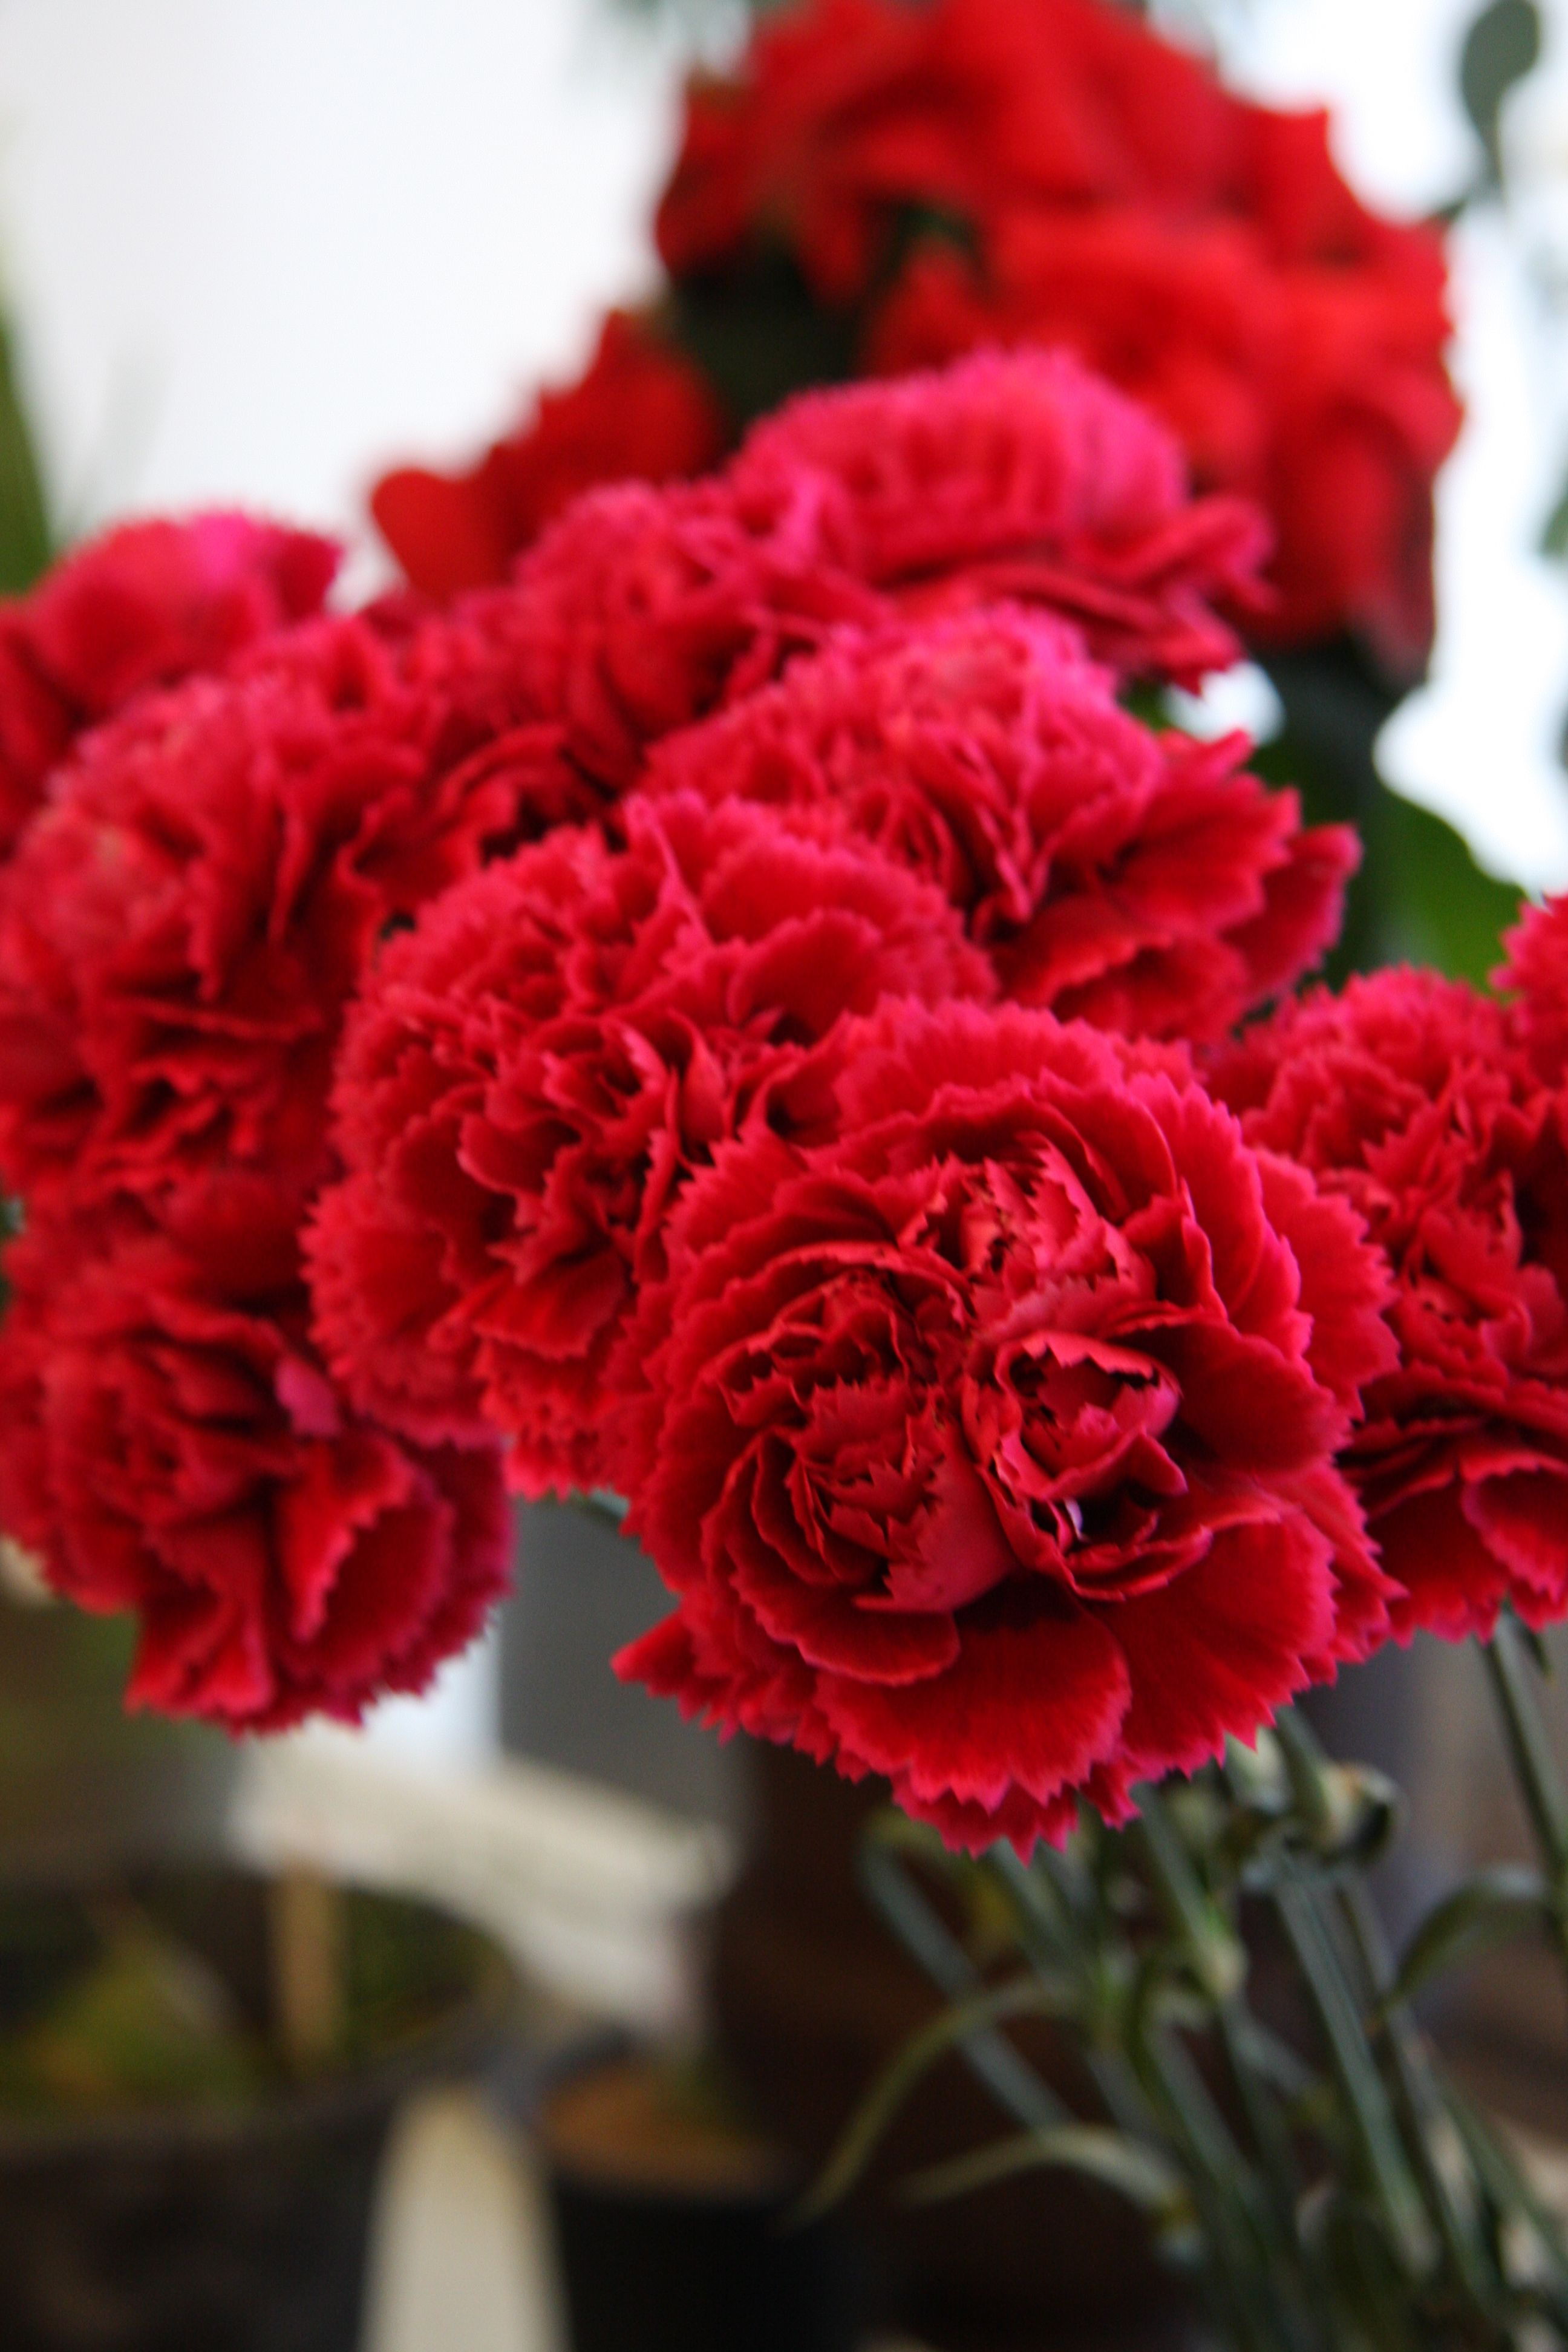 Claveles Color Rojo | Claveles Rojos | Pinterest | Red carnation ...